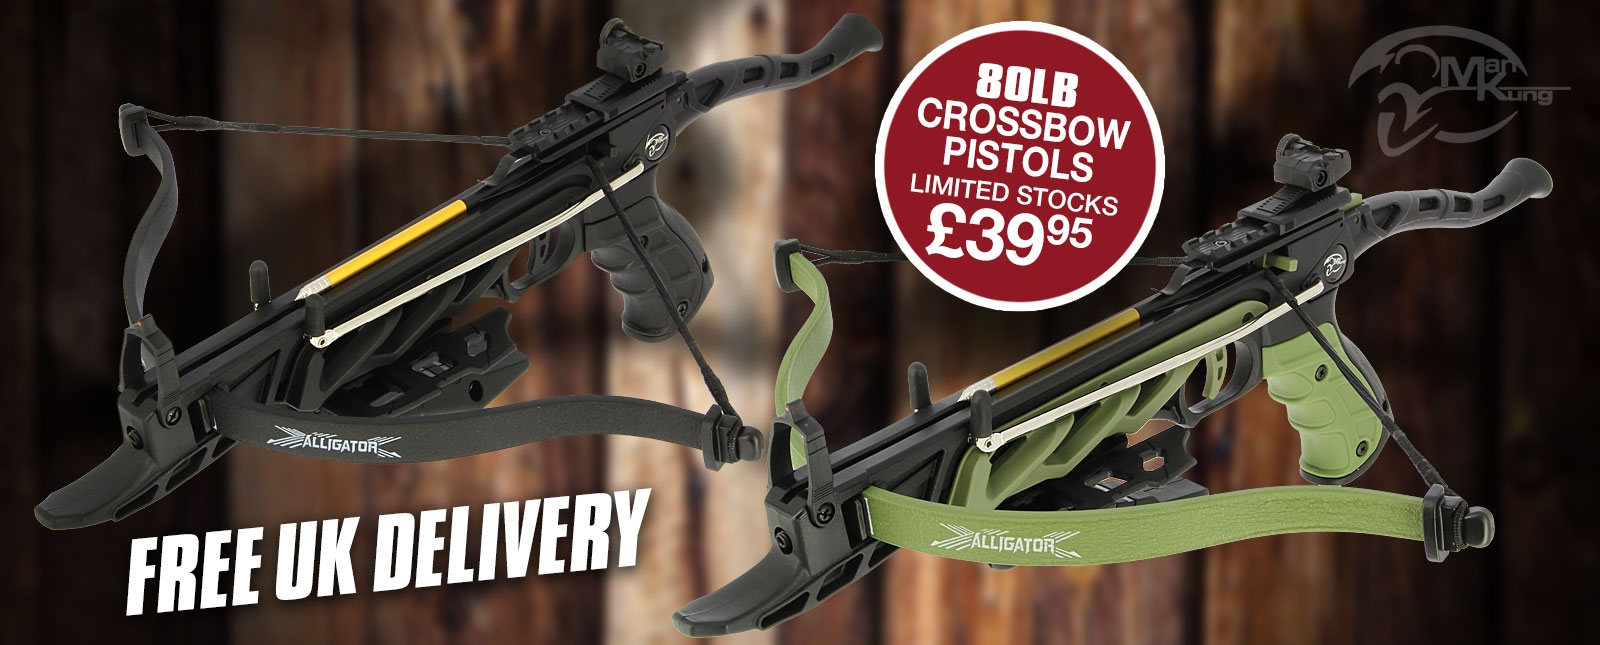 Alligator Crossbow Bundle